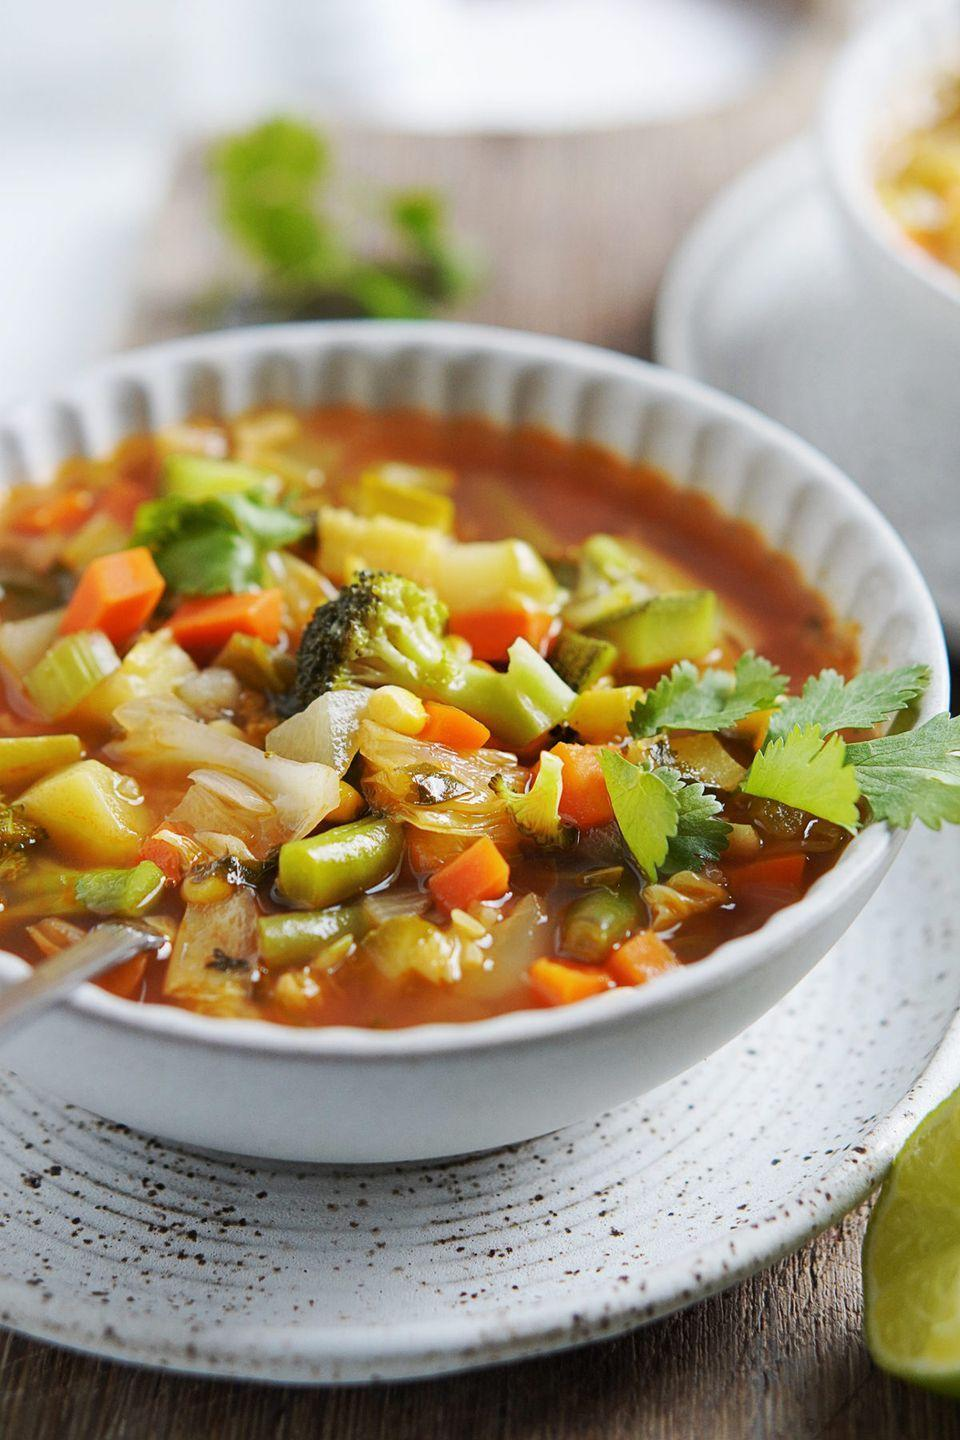 """<p>Show your whole body some love with this nutrient-dense soup containing broccoli, zucchini, carrots, celery, corn, cabbage, chayote (a gourd common in Latin cuisine), and potatoes. You can make this year round: Feel free to swap any of the veggies for those that are in season. </p><p><a class=""""link rapid-noclick-resp"""" href=""""https://www.muydelish.com/sopa-de-verduras/"""" rel=""""nofollow noopener"""" target=""""_blank"""" data-ylk=""""slk:GET THE RECIPE"""">GET THE RECIPE</a></p><p><em>Per serving: 110 calories, 1 g fat (0 g saturated), 630 mg sodium, 23 g carbs, 6 g sugar, 5 g fiber, 6 g protein</em></p>"""